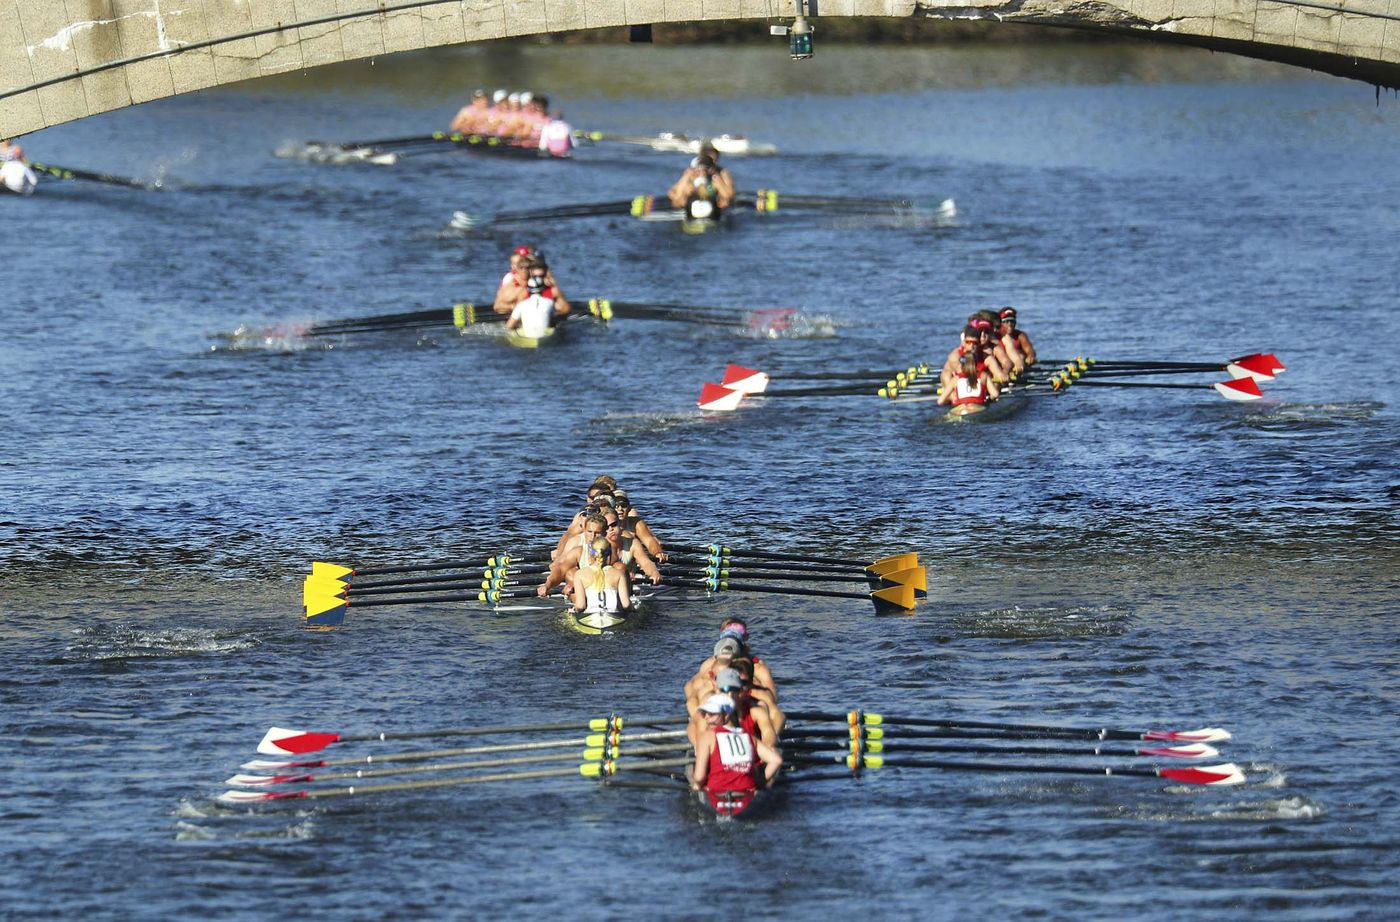 Row House is taking on the Head of the Charles Regatta